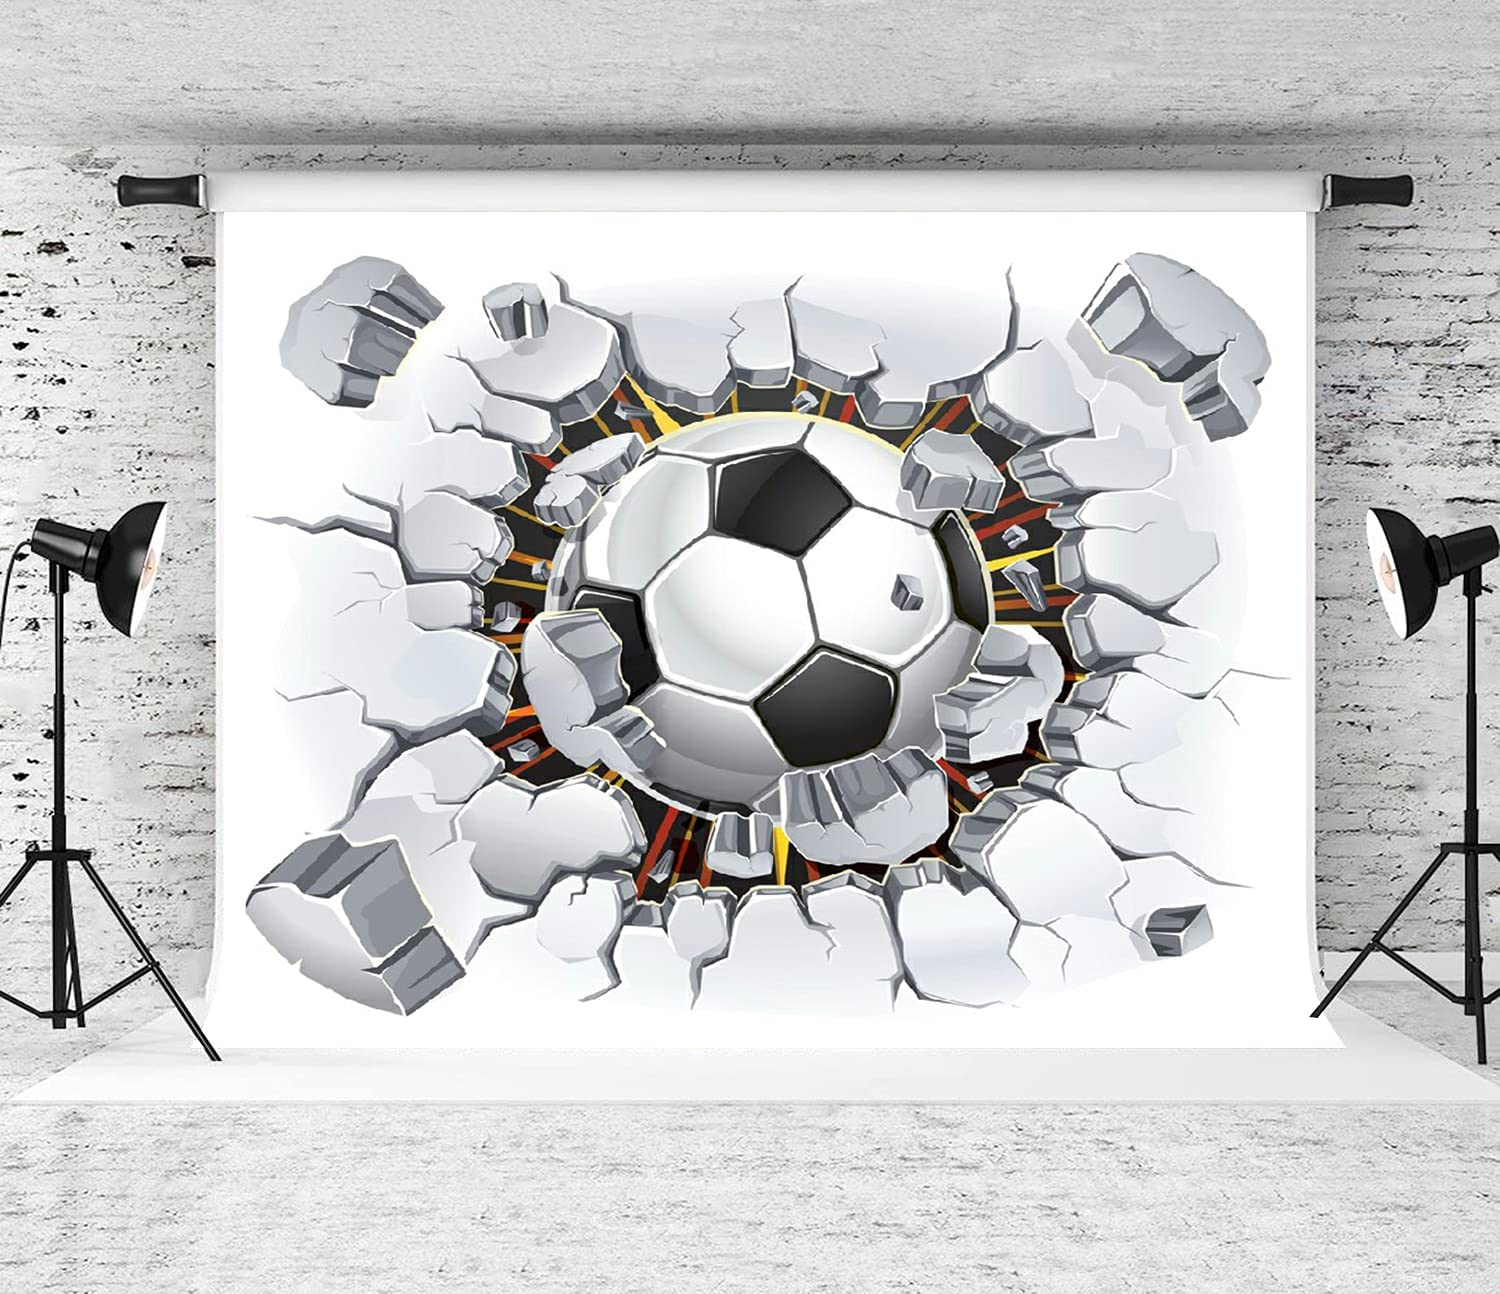 ZOANEN Nippon regular agency Photography Same day shipping Background American Decorat 3D Party Football